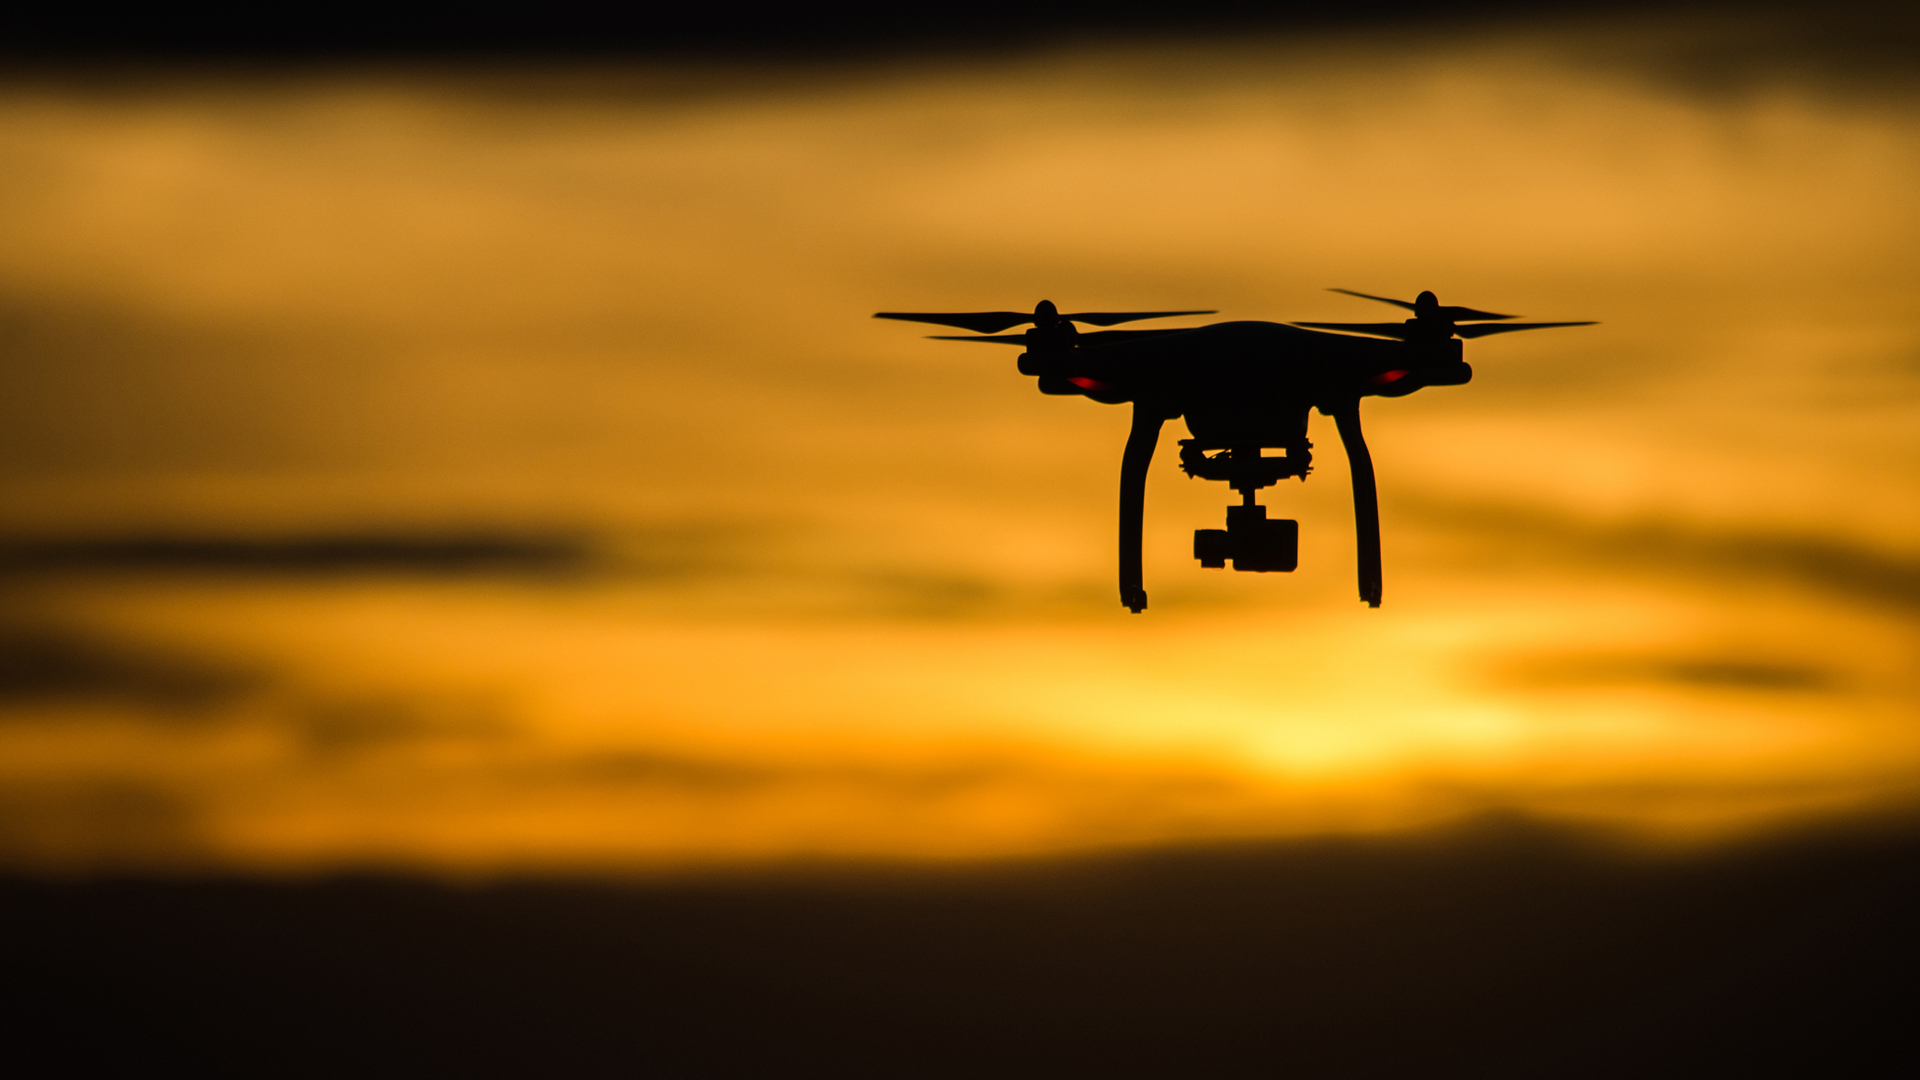 Can you fly a drone at night?